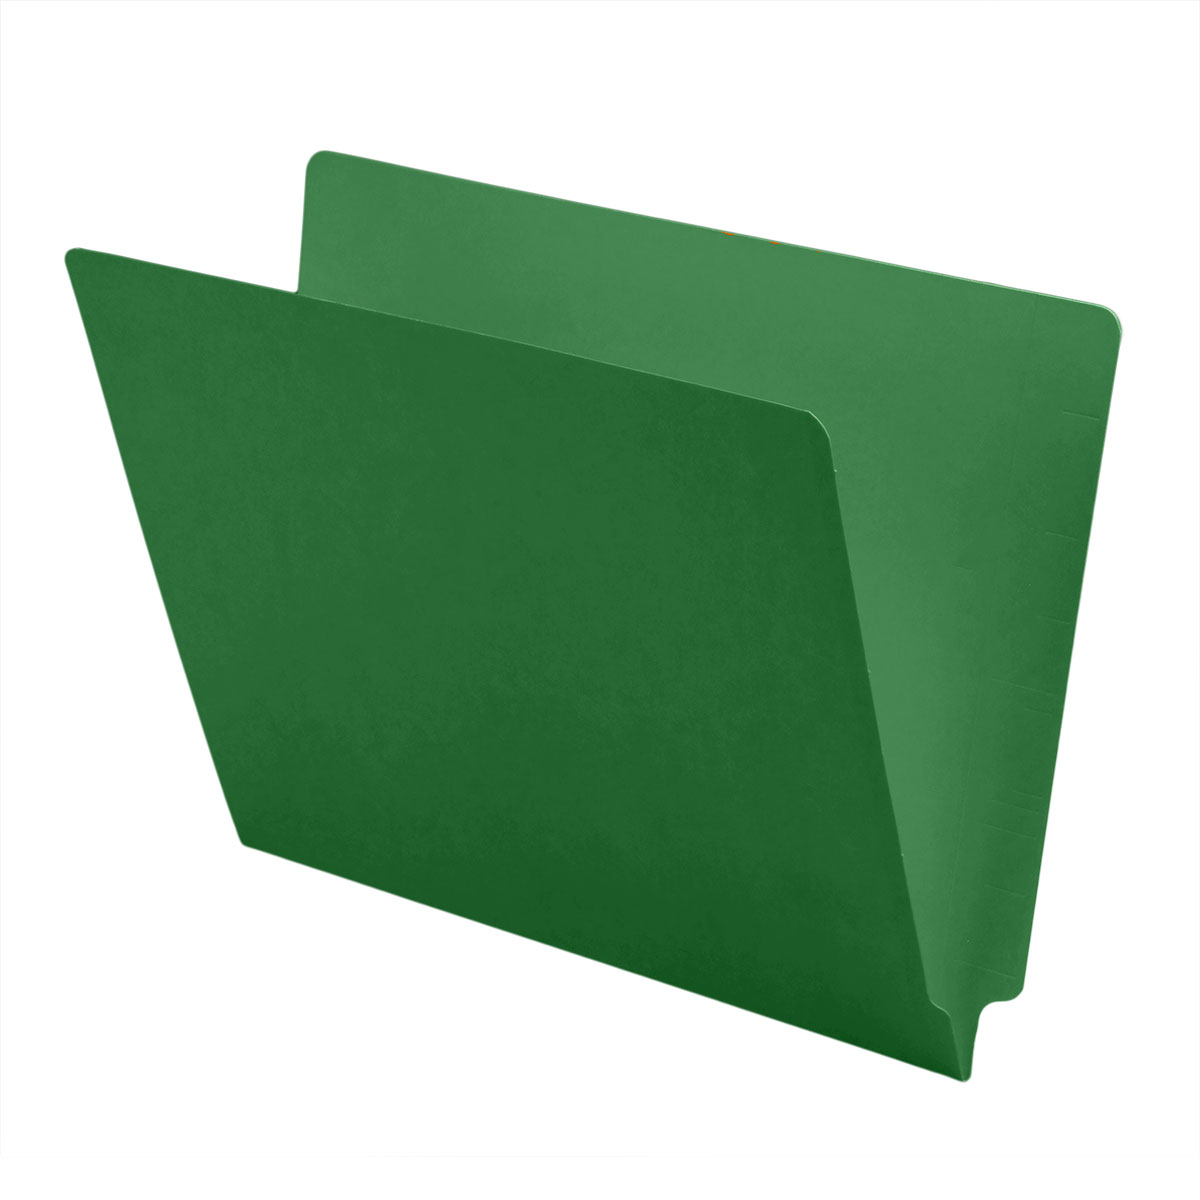 S-1500-GRN - 11 pt Color Folders, Full Cut 2-Ply End Tab, Letter Size, Green (Box of 100)